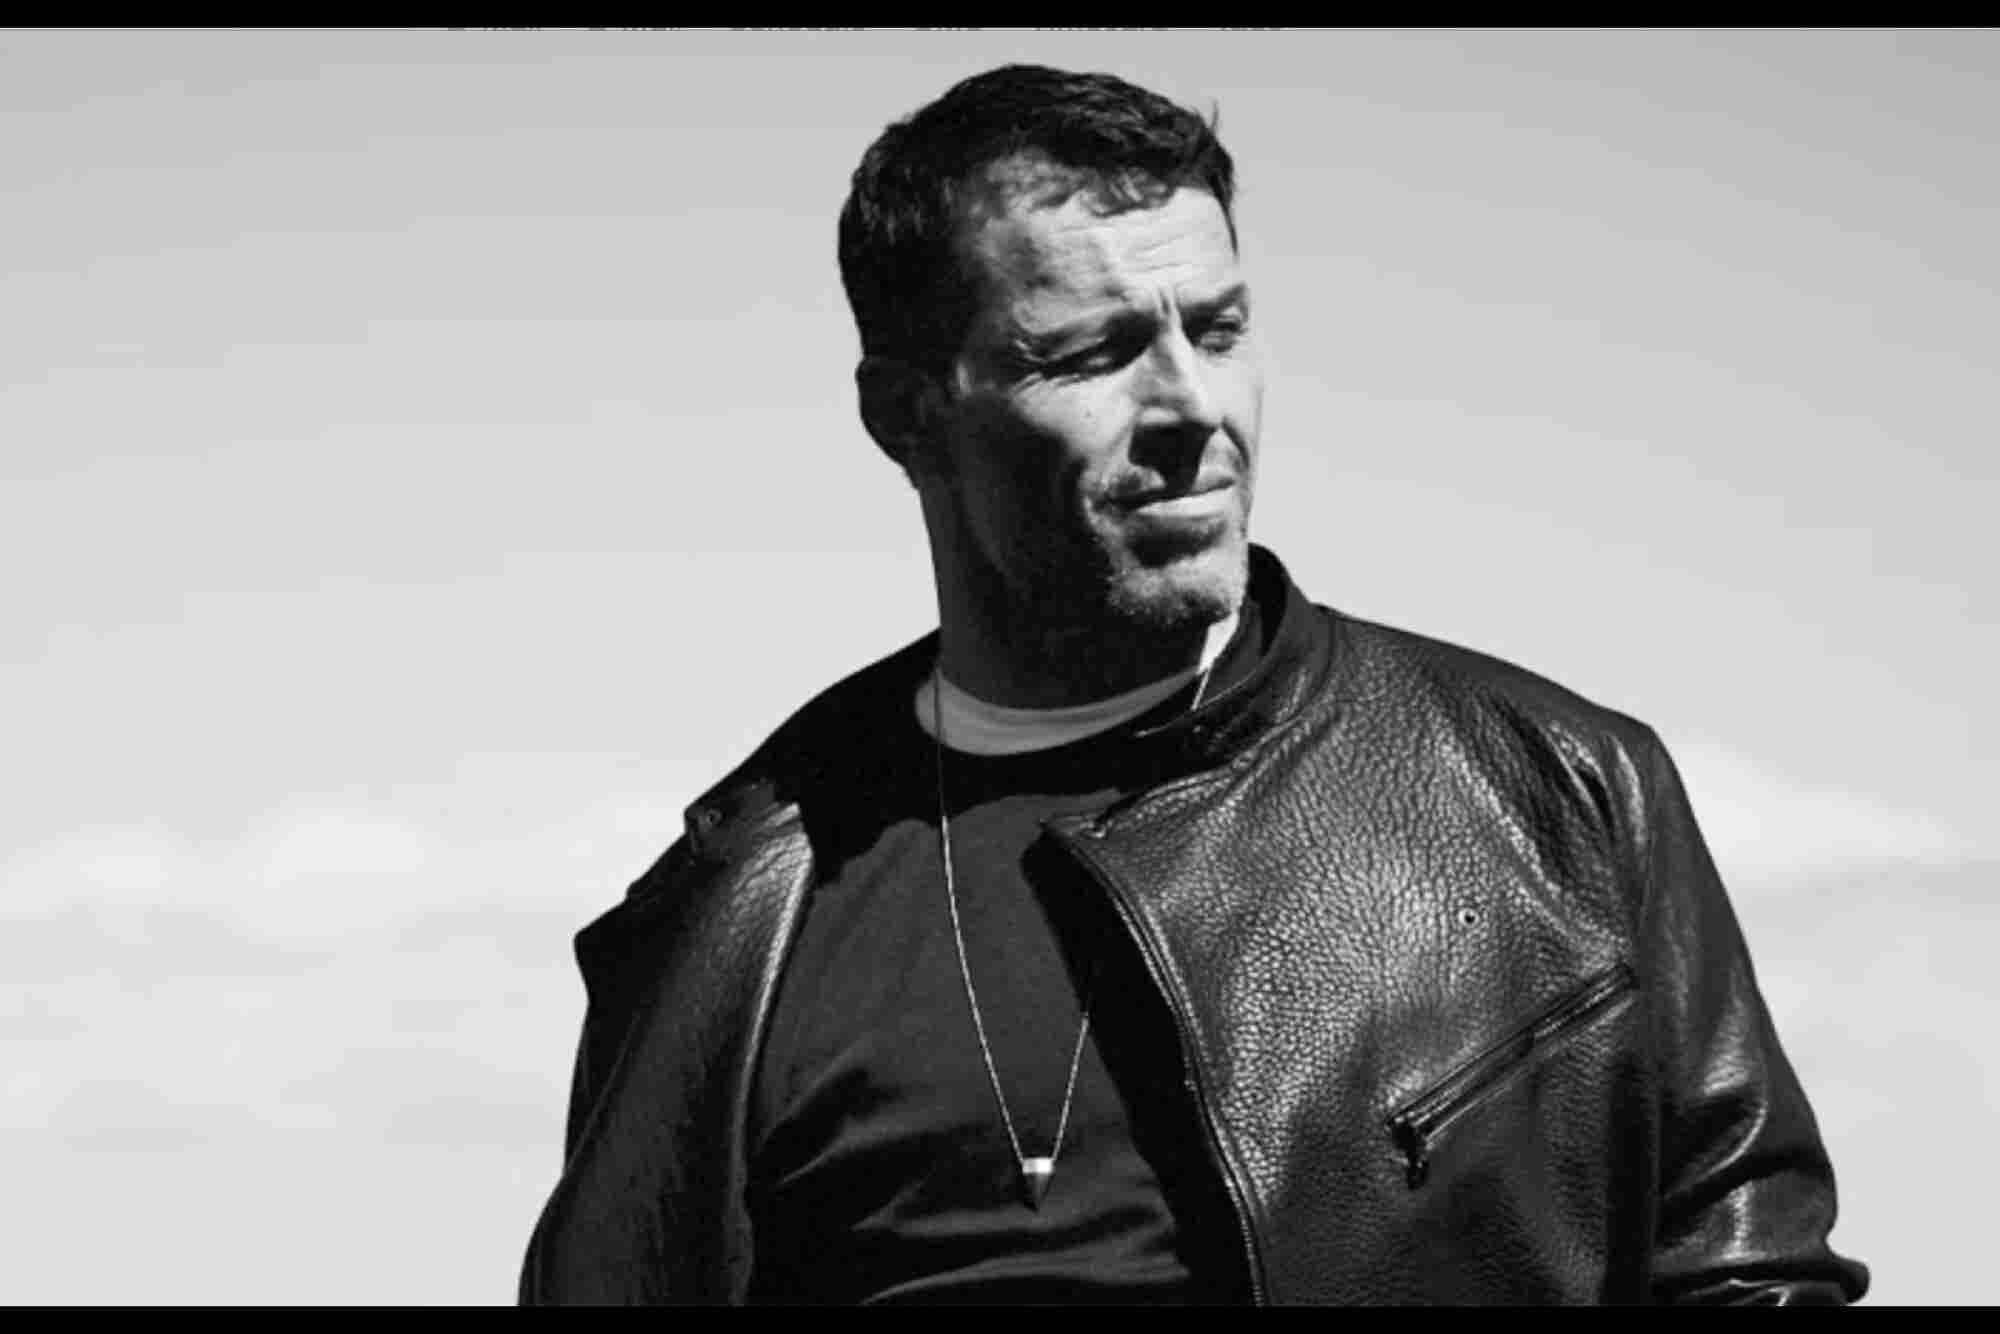 Tony Robbins: Leverage Tax Advantages to Build Wealth